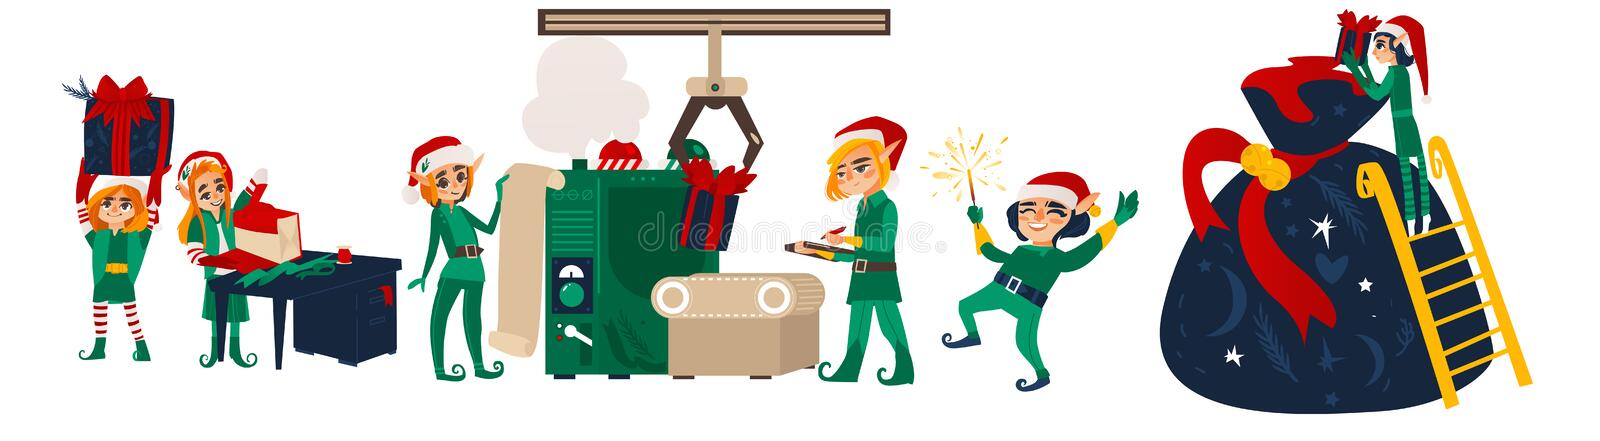 Christmas elves making presents in Santa workshop. Set of Christmas elves working, making presents in Santa workshop, flat cartoon vector illustration isolated royalty free illustration